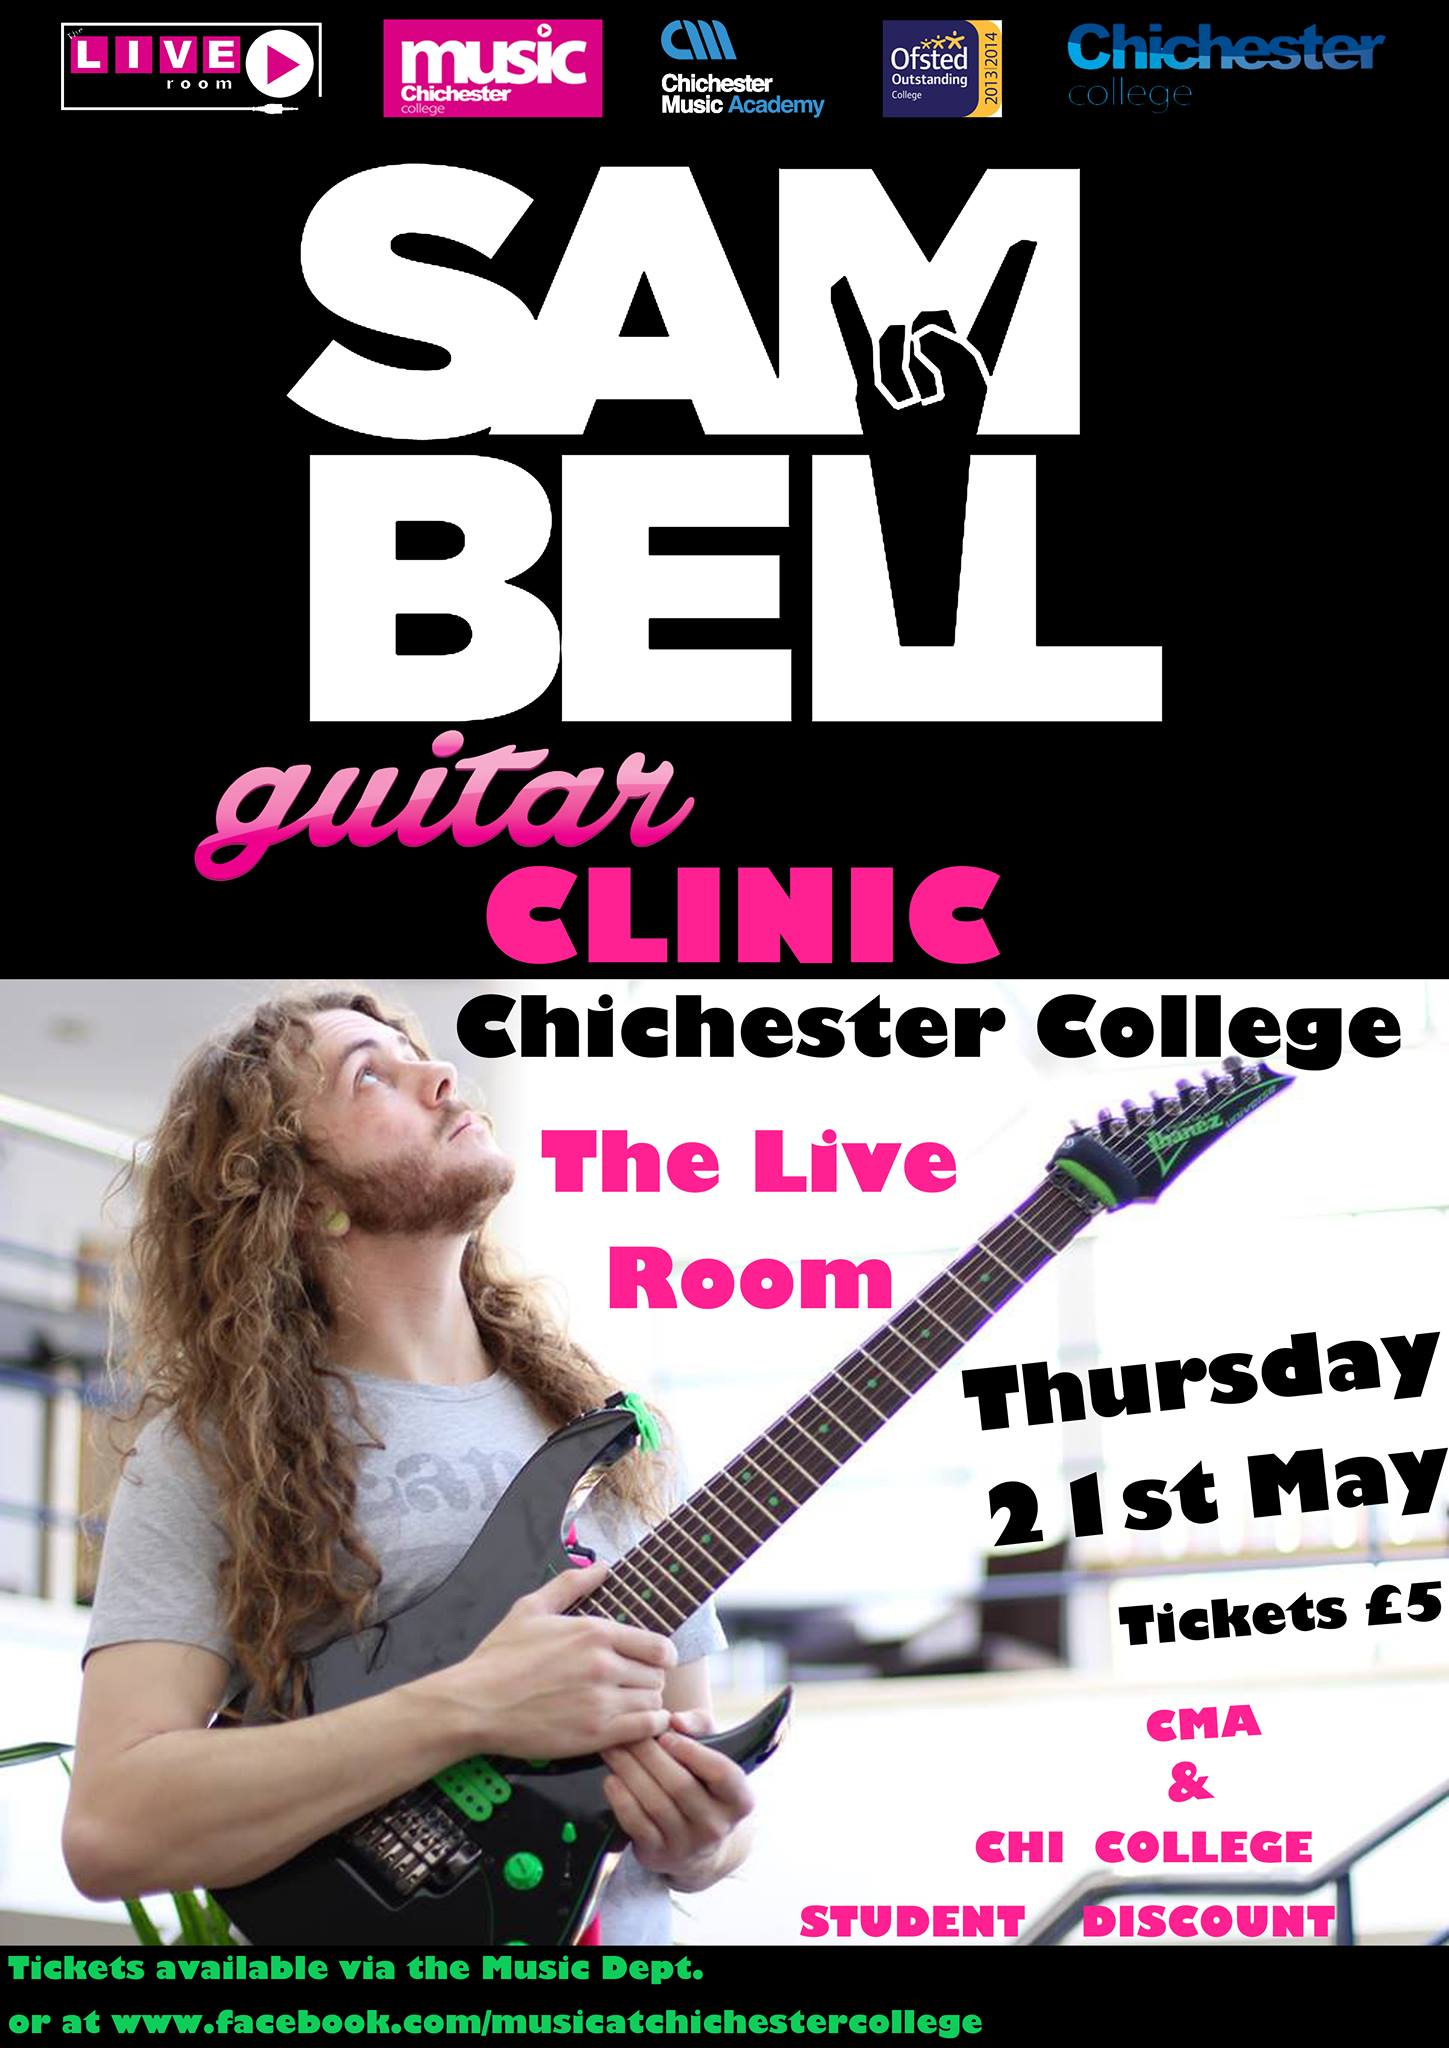 Guitar Clinic at The Live Lounge, Chichester Collage. I will be playing various compositions on my 6, 7 and 8 string guitars whilst talking about technique, approach to songwriting, and much more. I Tickets available through Music Department or through: www.facebook.com/musicatchichestercollege